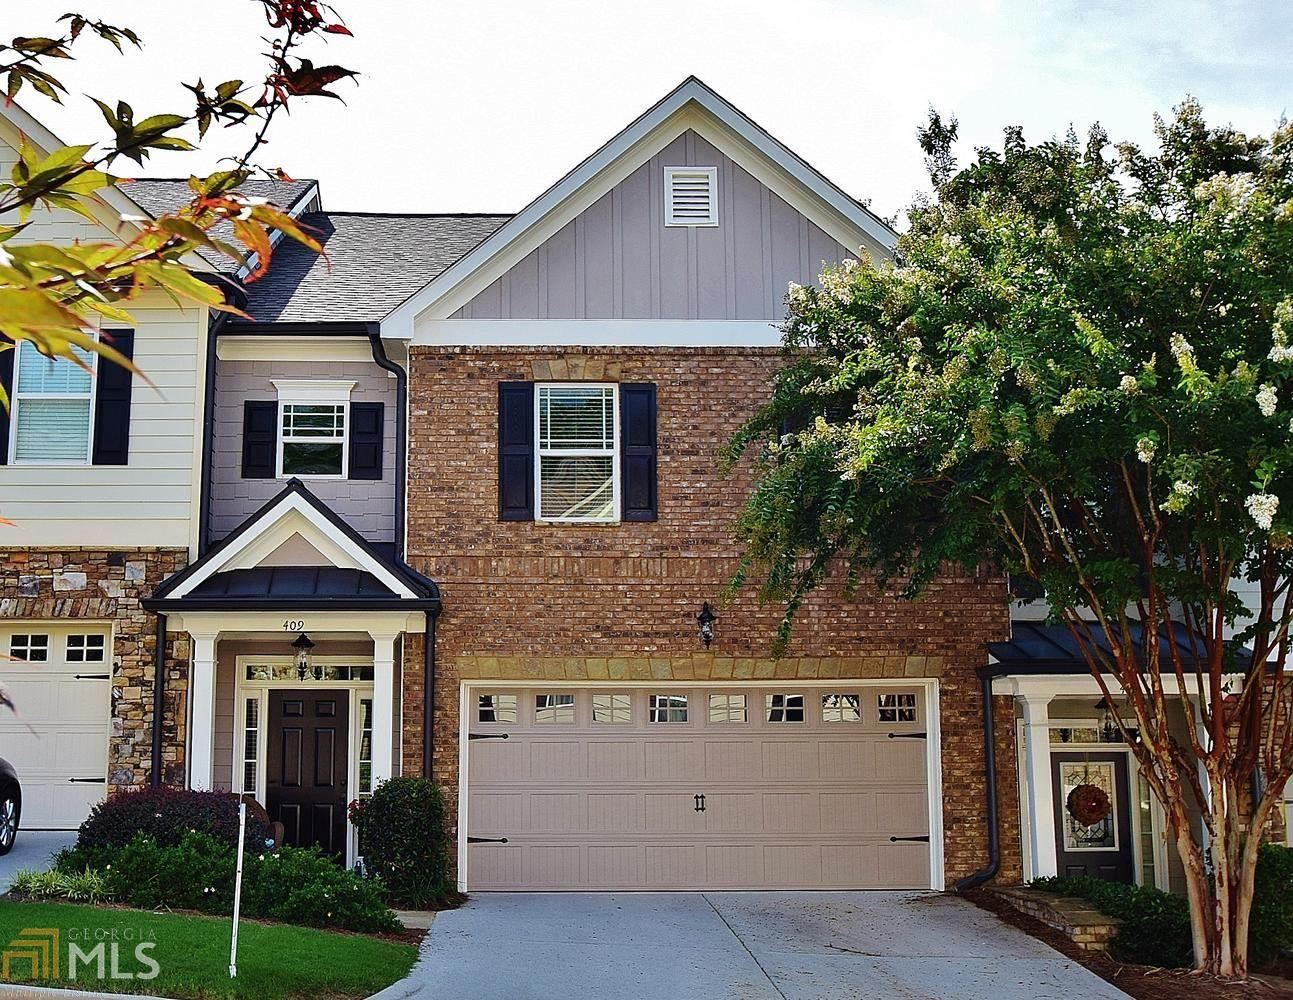 409 Brookhaven Ct, Gainesville, GA 30501 - MLS#: 8835903